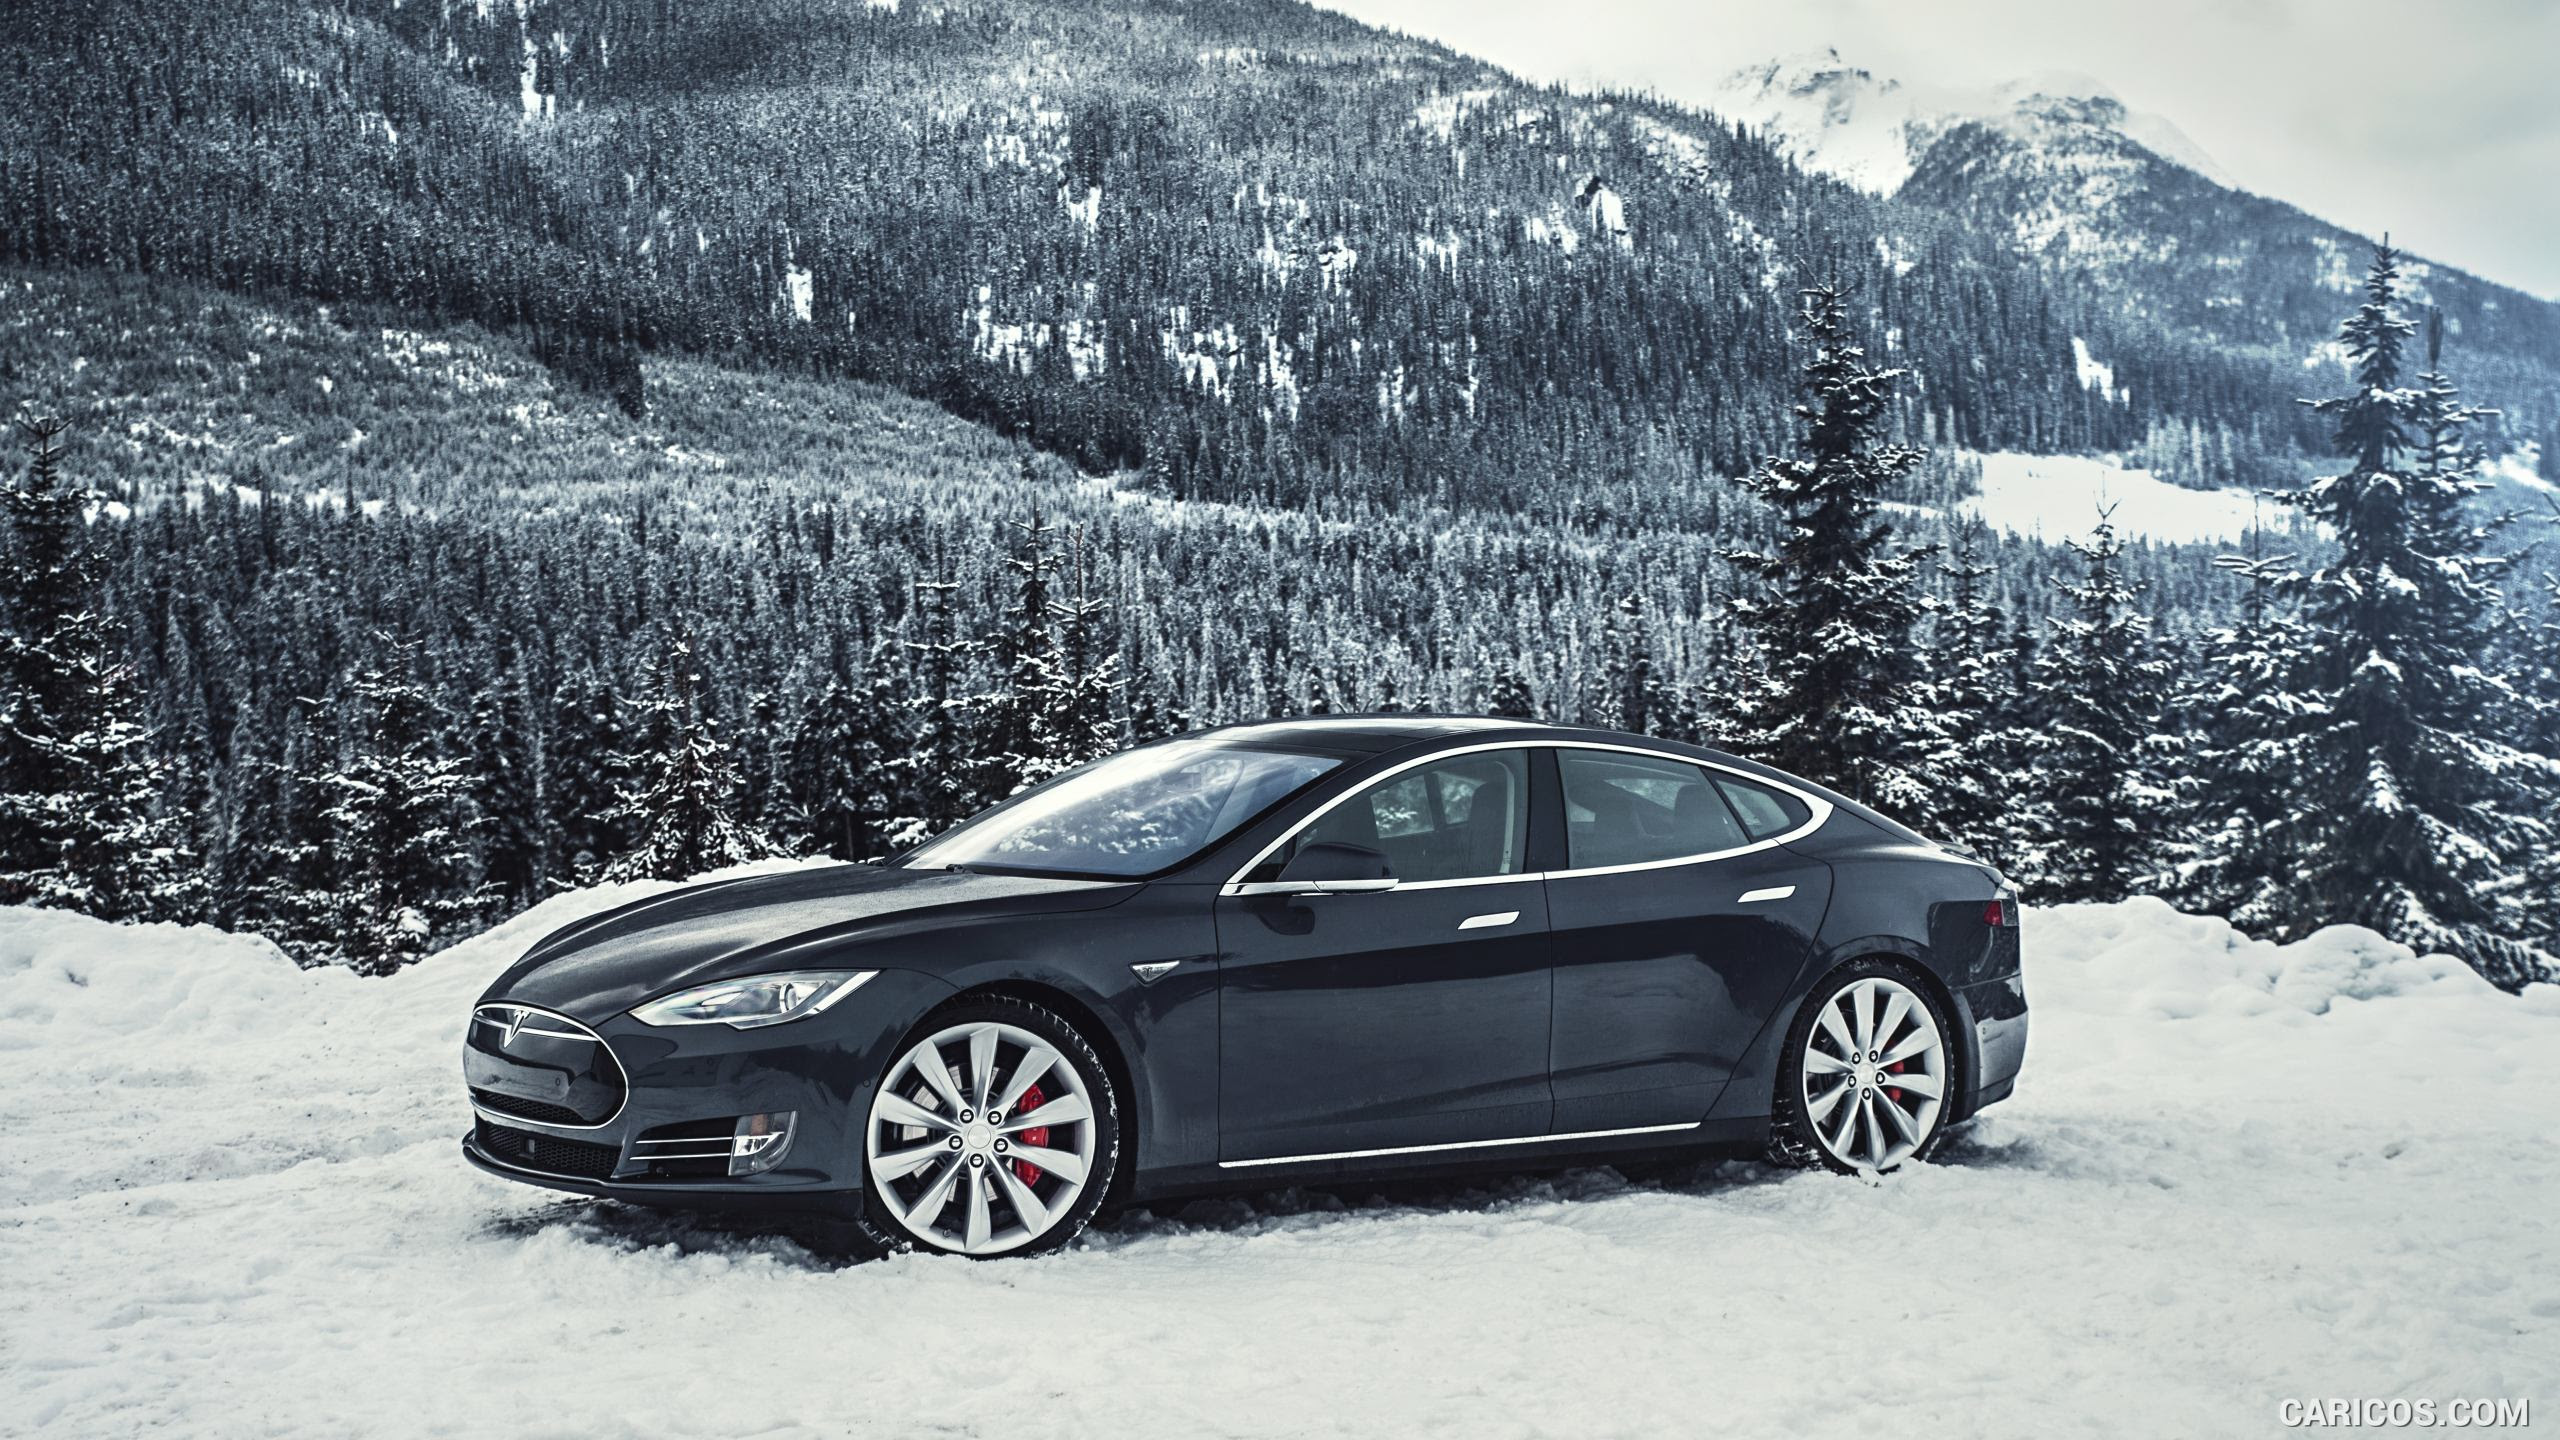 Best Affordable Cars For Snow